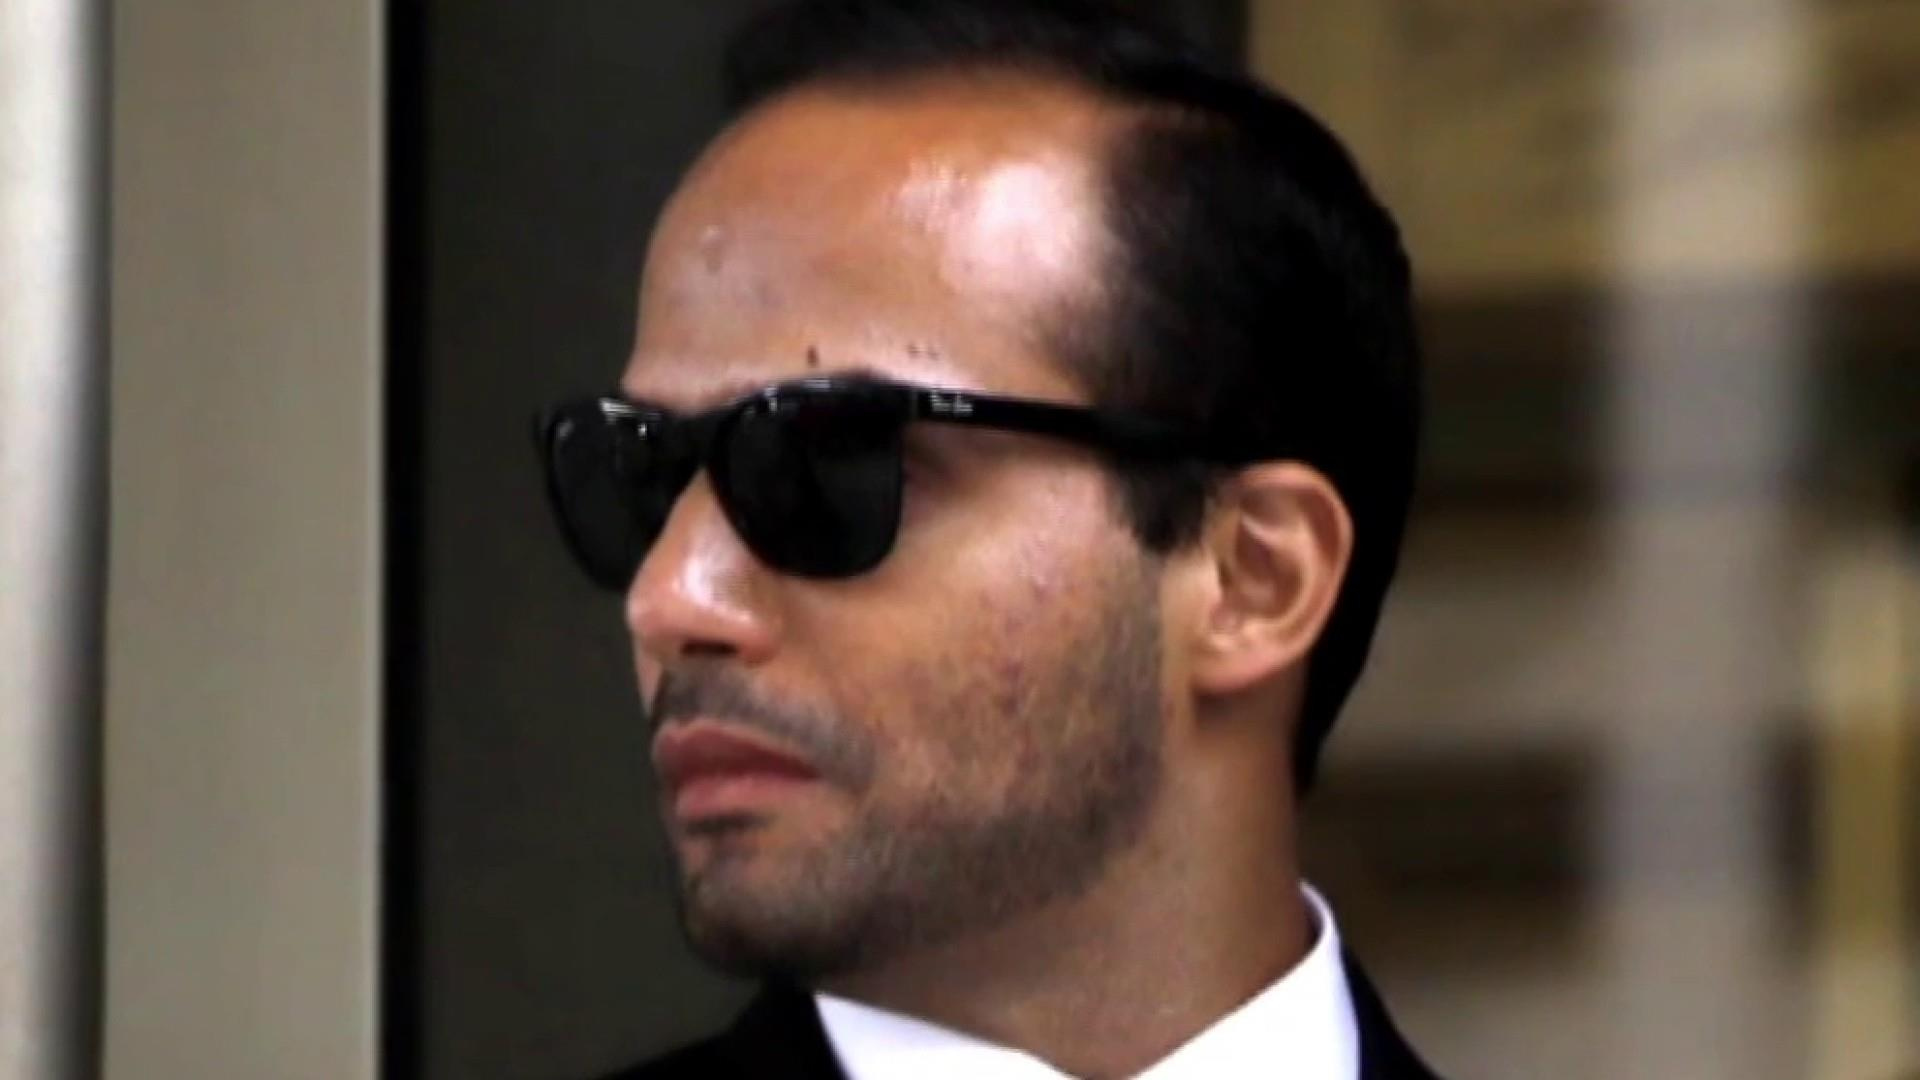 Papadopoulos: I was very hostile to Russia in my Trump policies